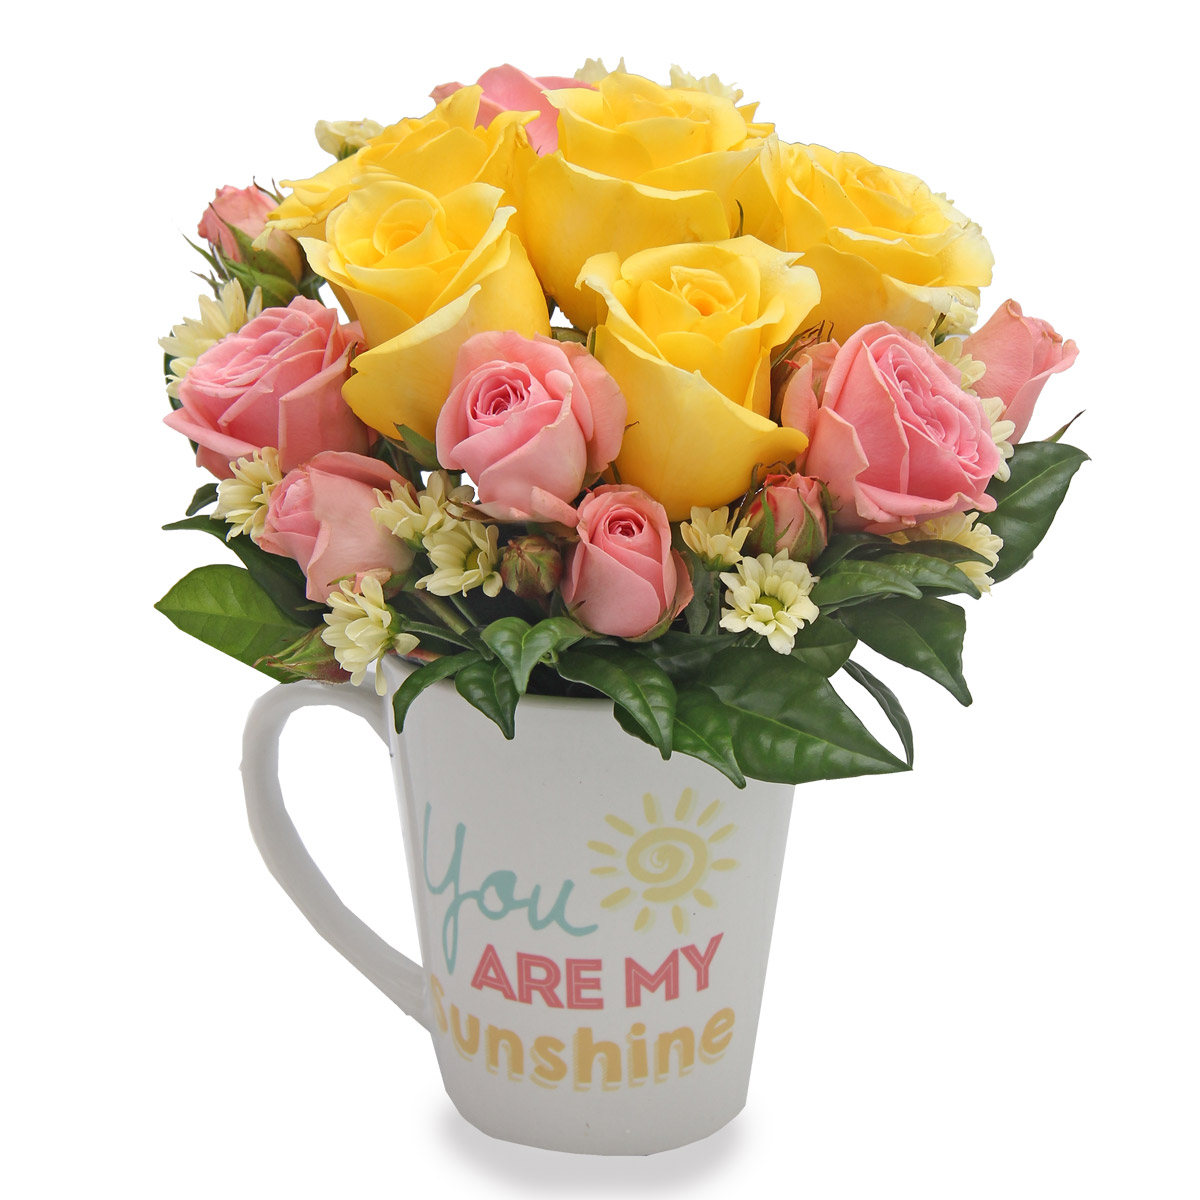 KS1527 My Only Sunshine yellow pink roses arrangement